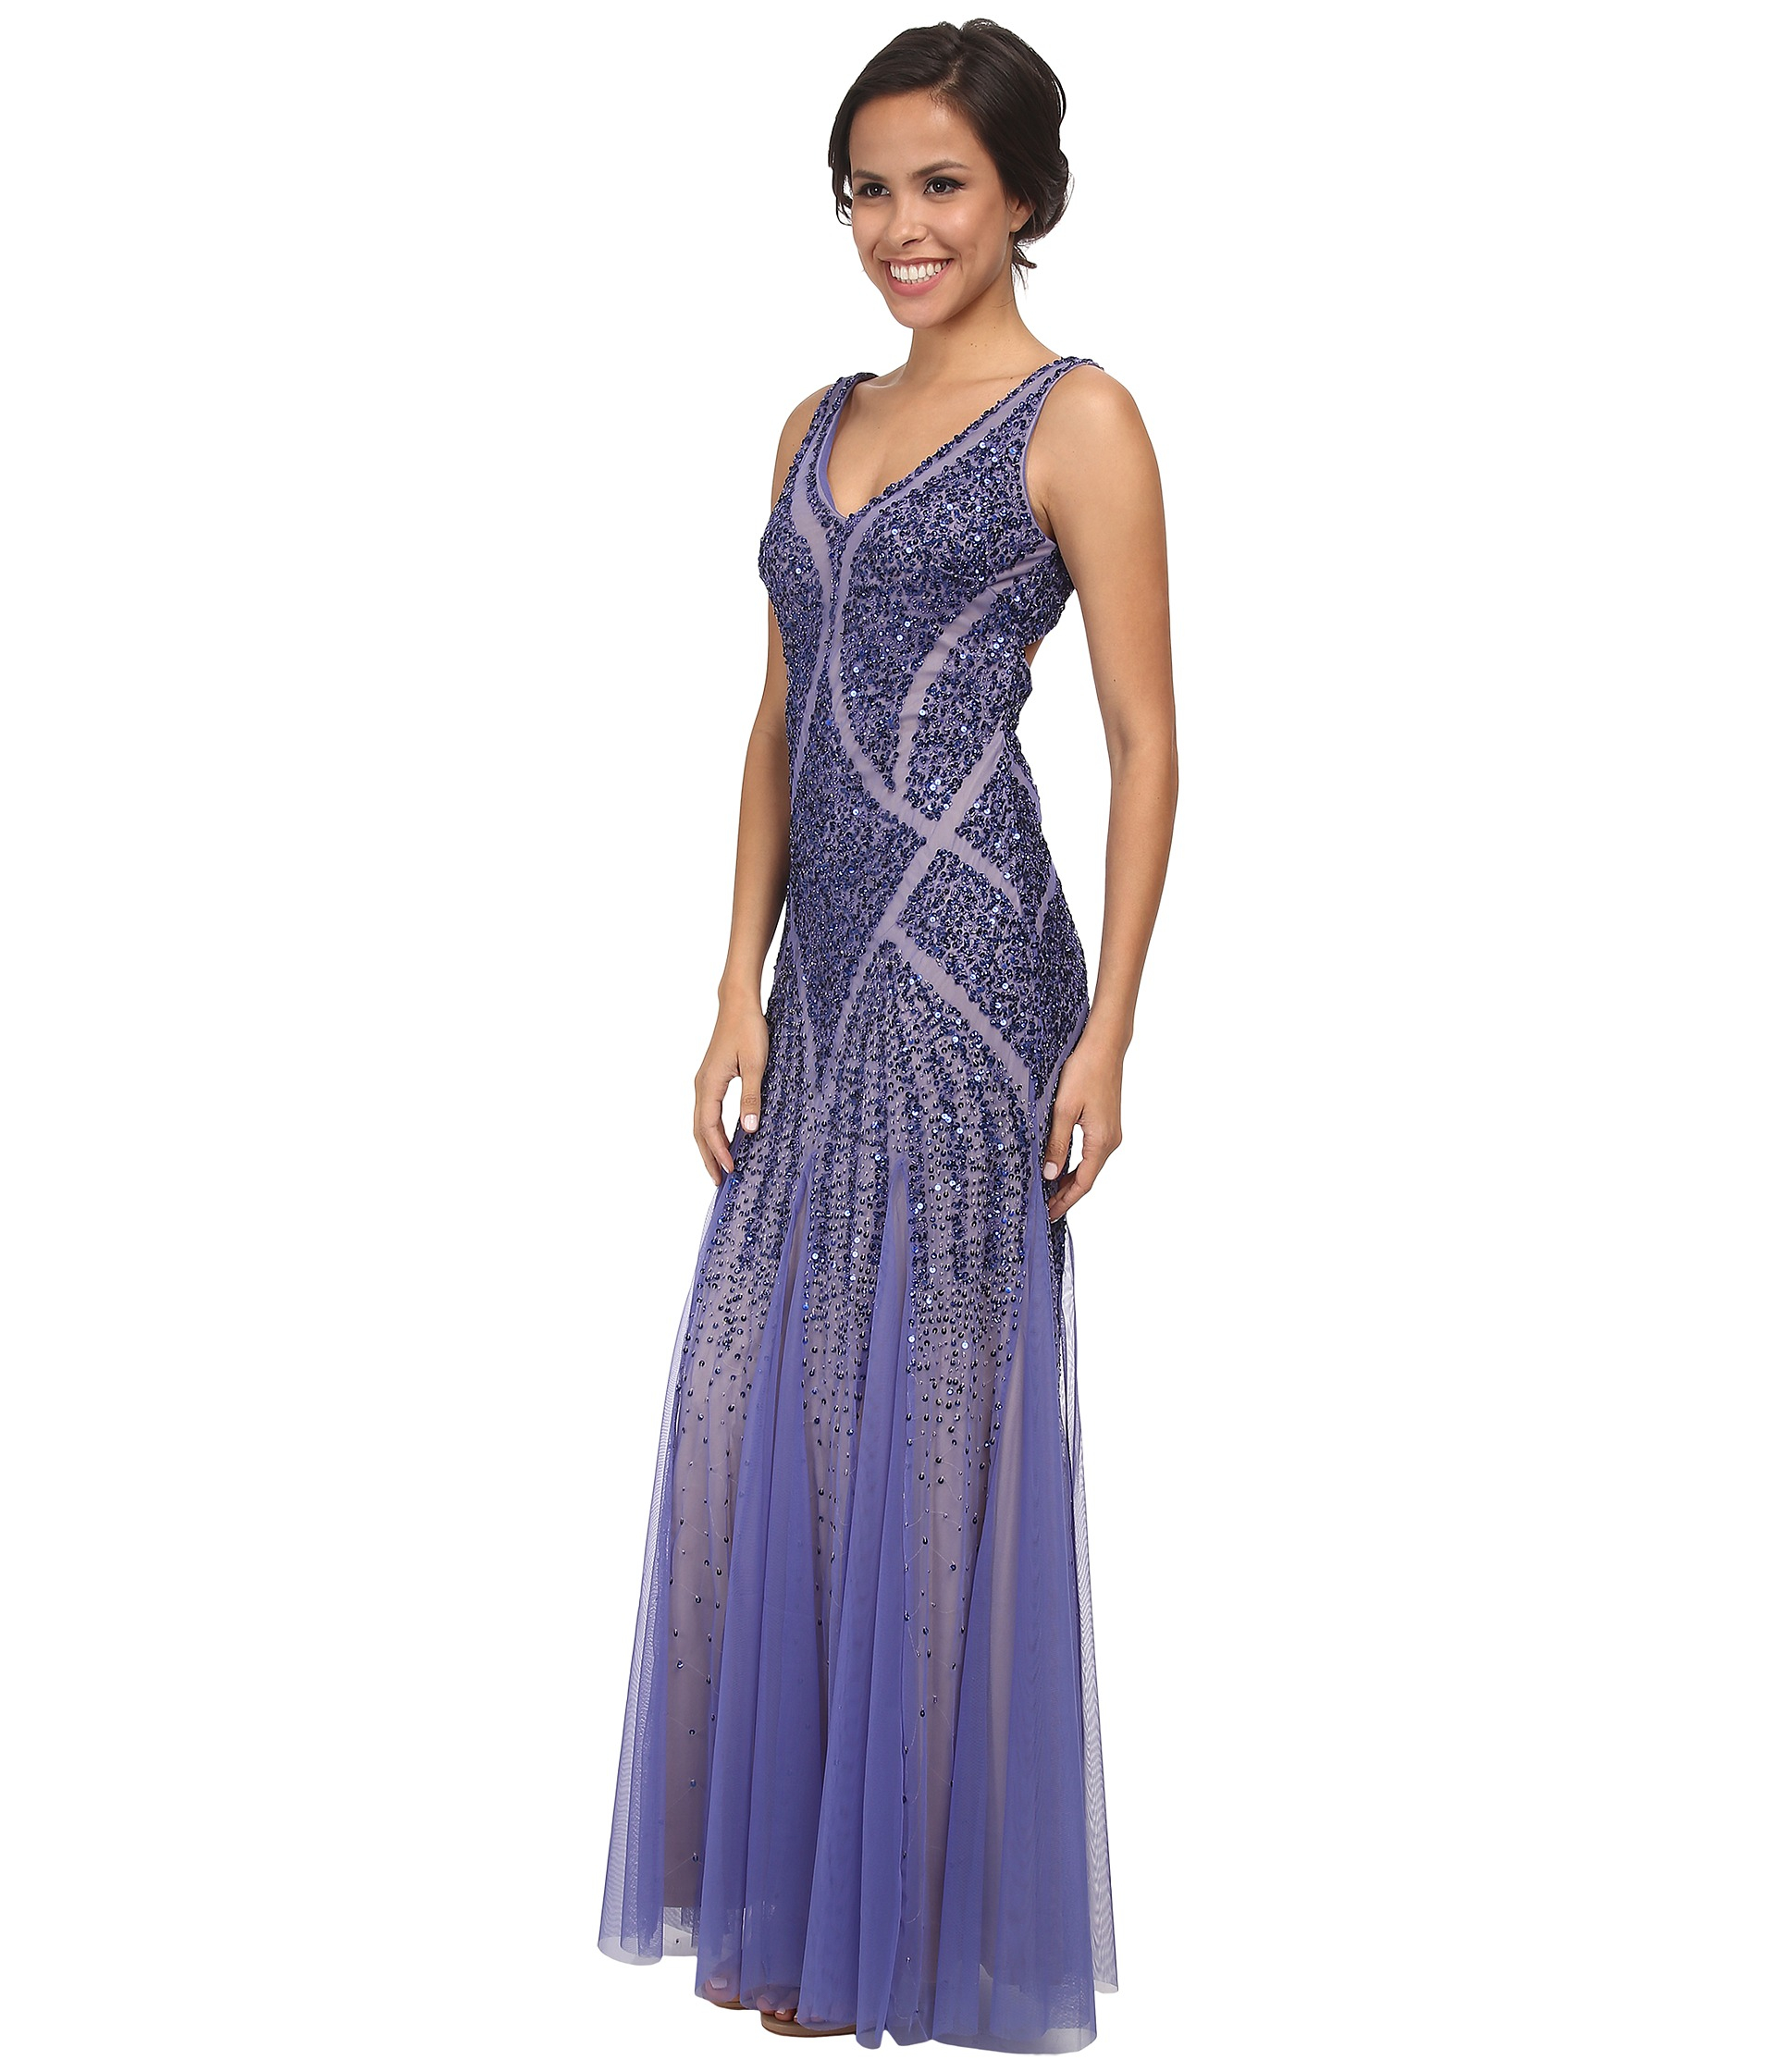 Lyst - Adrianna Papell Beaded V-neck Mermaid Gown in Purple